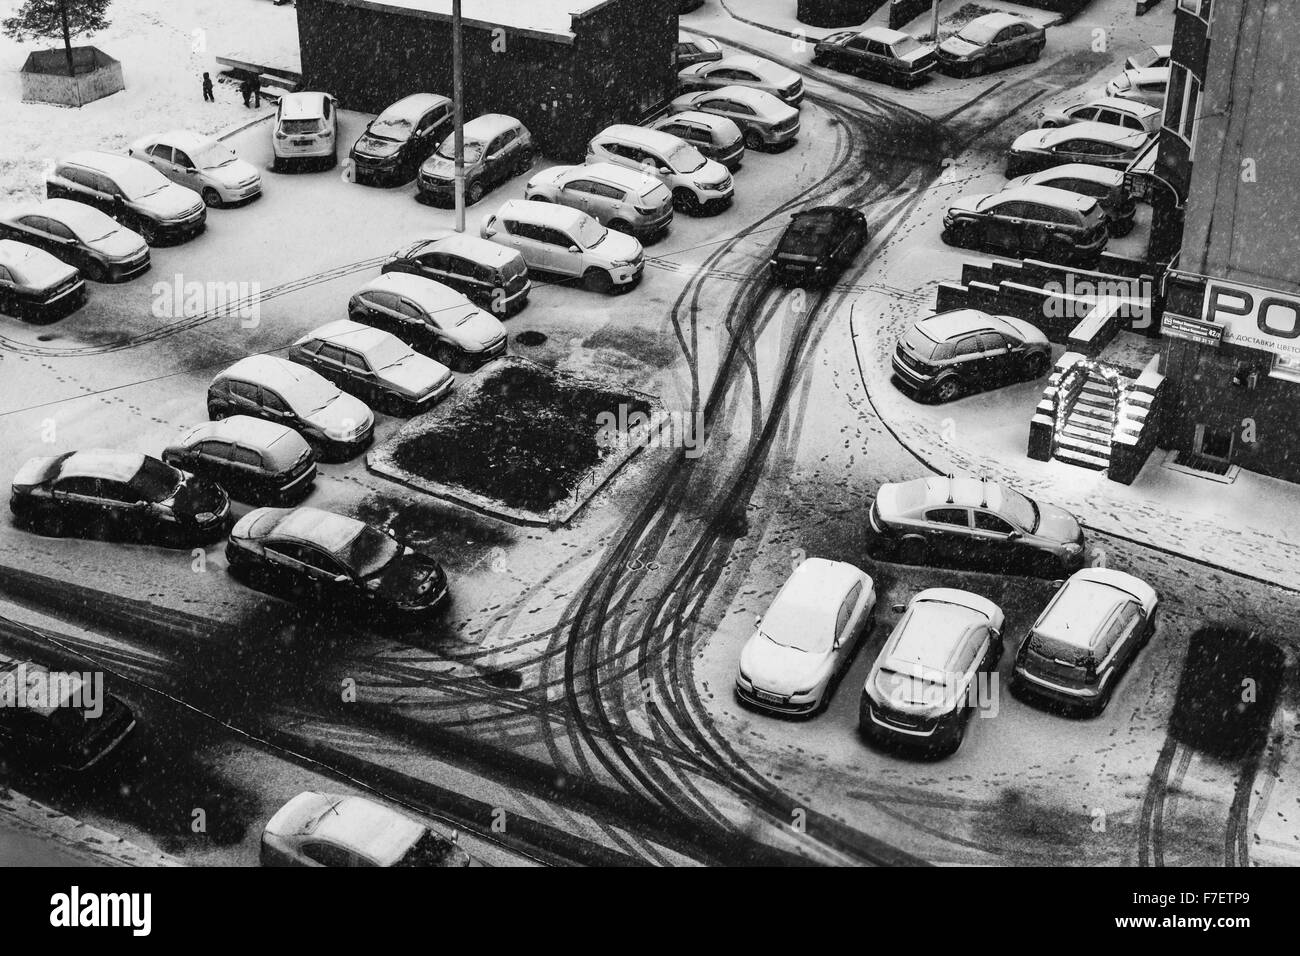 Many parked cars are parked as a snow storm starts to cover the vehicles in a contemporary street scene in Ufa, - Stock Image